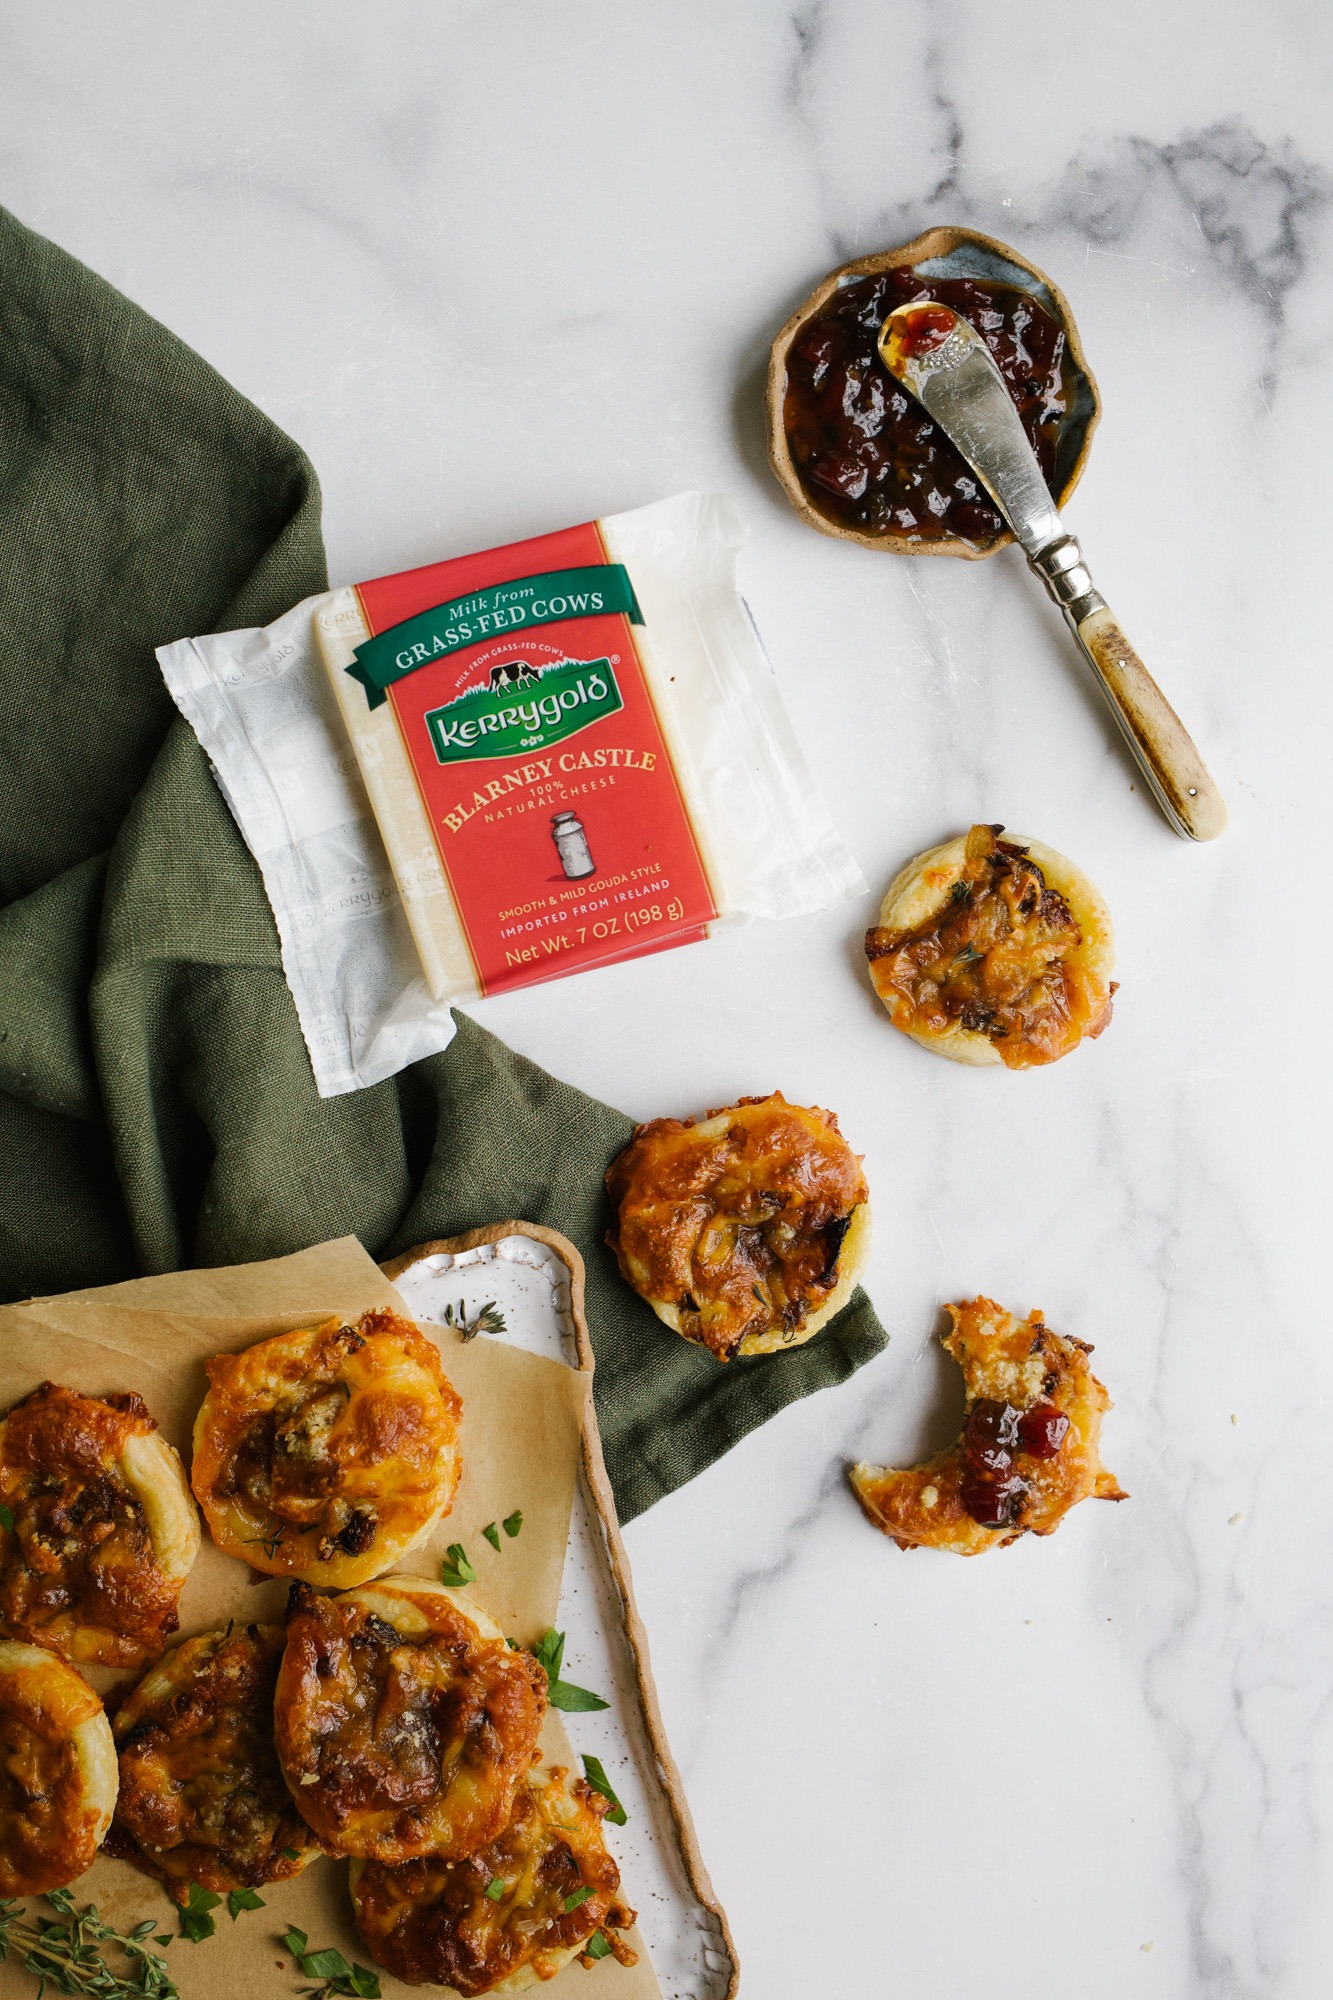 Gouda Cheese Puffs by Wood and Spoon. These are mini round puff pastry appetizers made with caramelized onions, mustard, herbs and shredded gouda cheese. The tarts bake up and are served with a spicy tomato bacon jam. Make these for holiday parties or add to cheese charcuterie and snack boards. Read more about the recipe and get ideas for holiday treats on thewoodandspoon.com